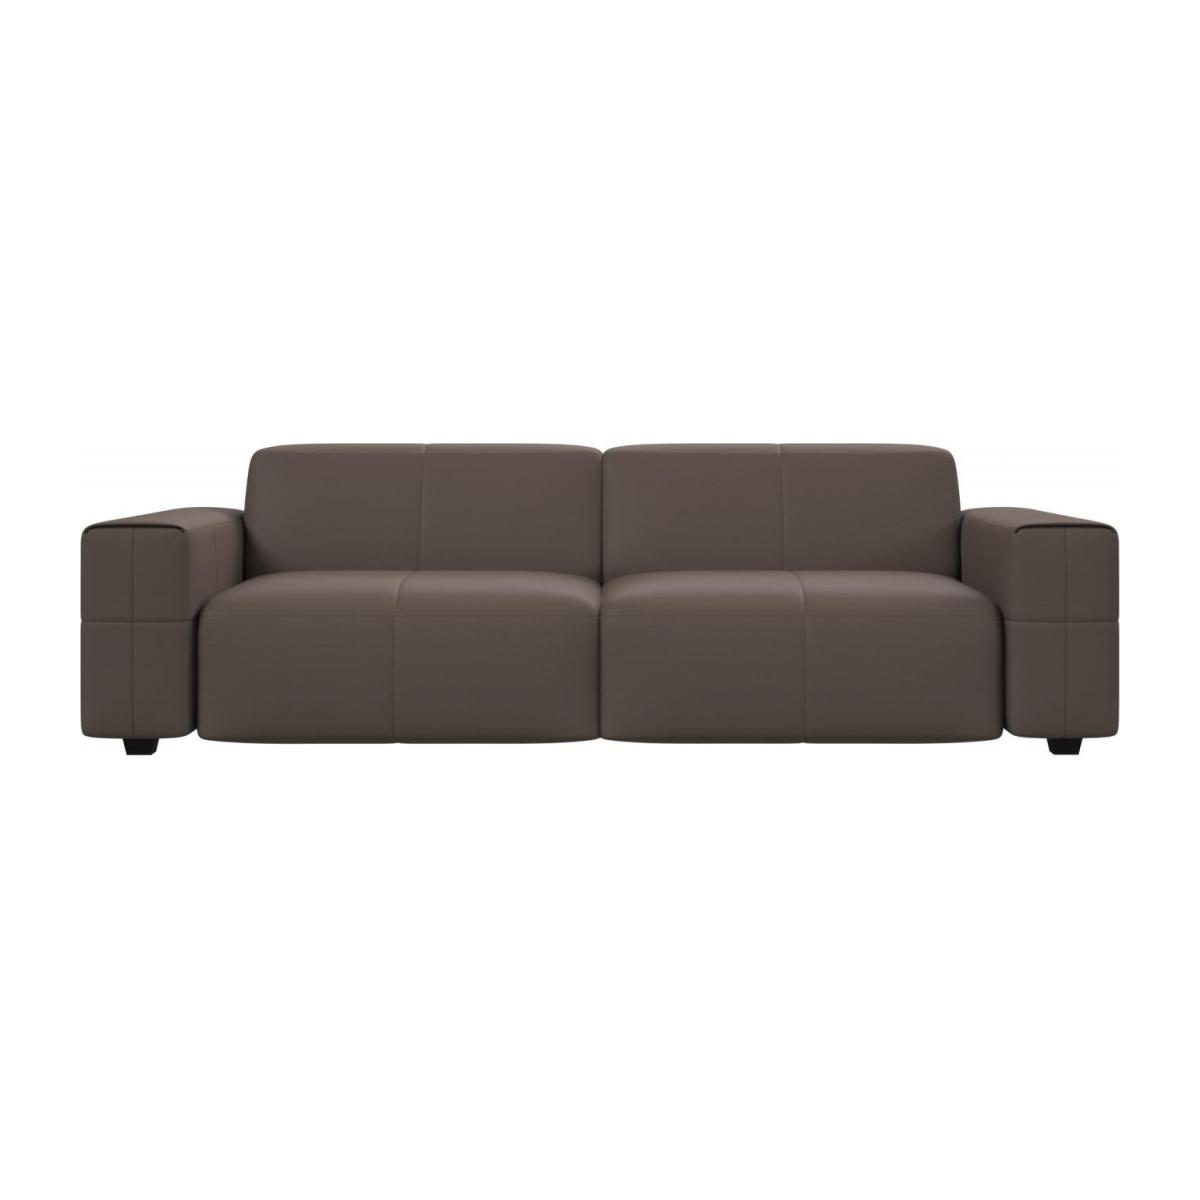 4 seater sofa in Eton veined leather, stone n°2